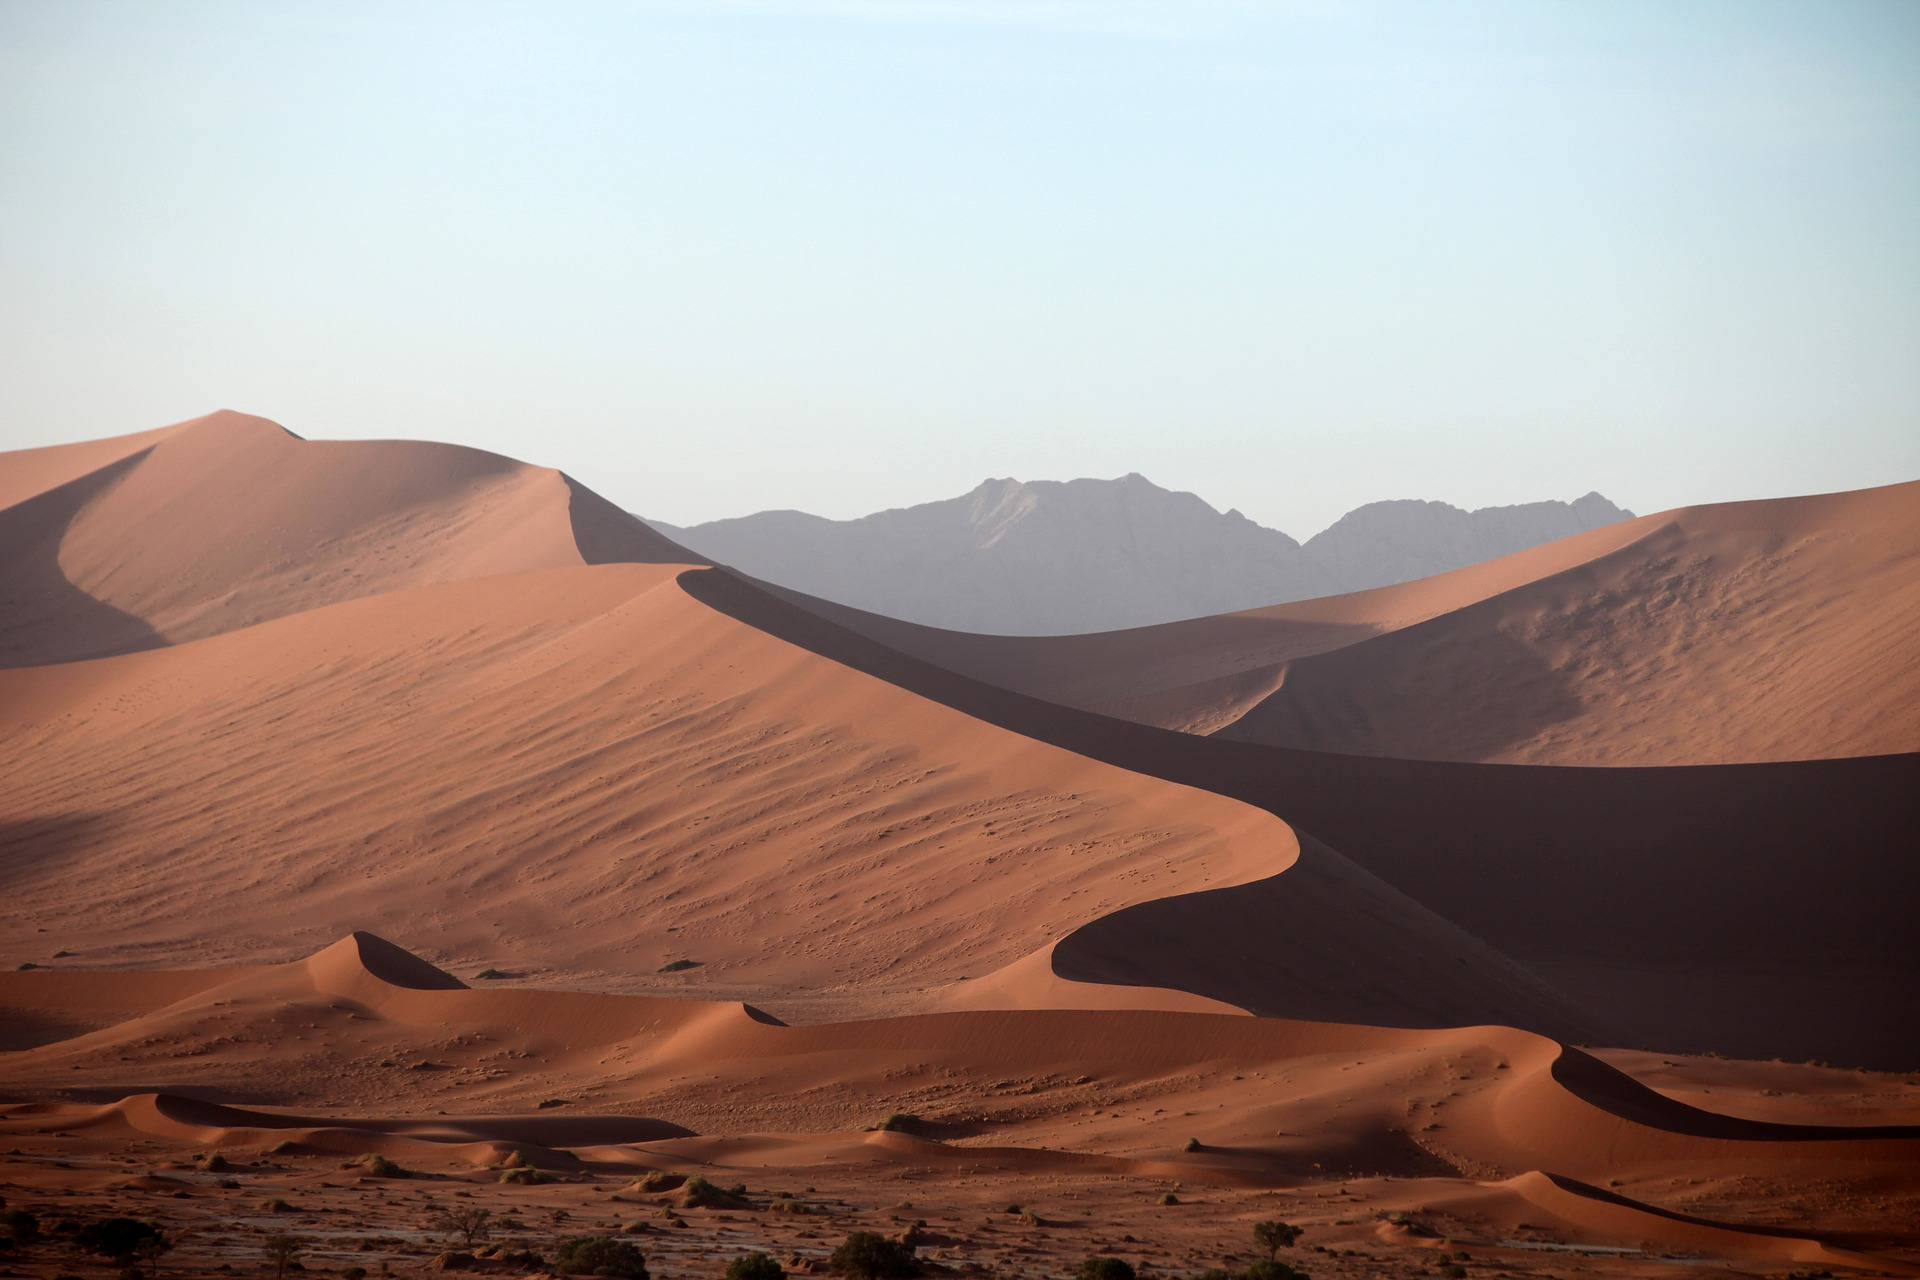 Namibian desert and majestic sand dunes.